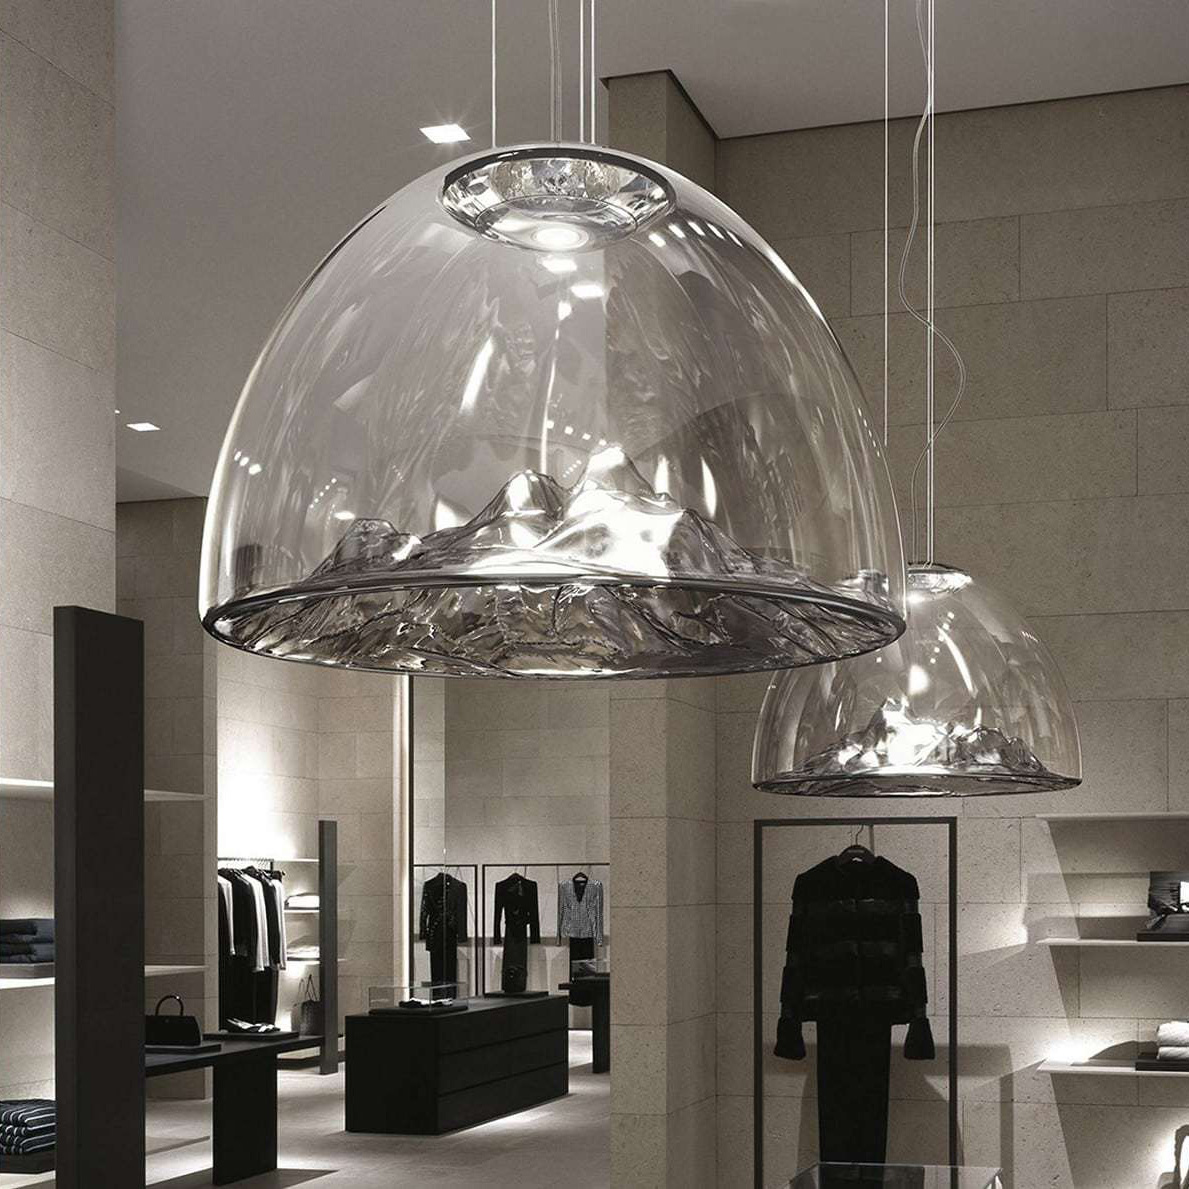 Luminaire suspension de luxe - IDKREA Collection